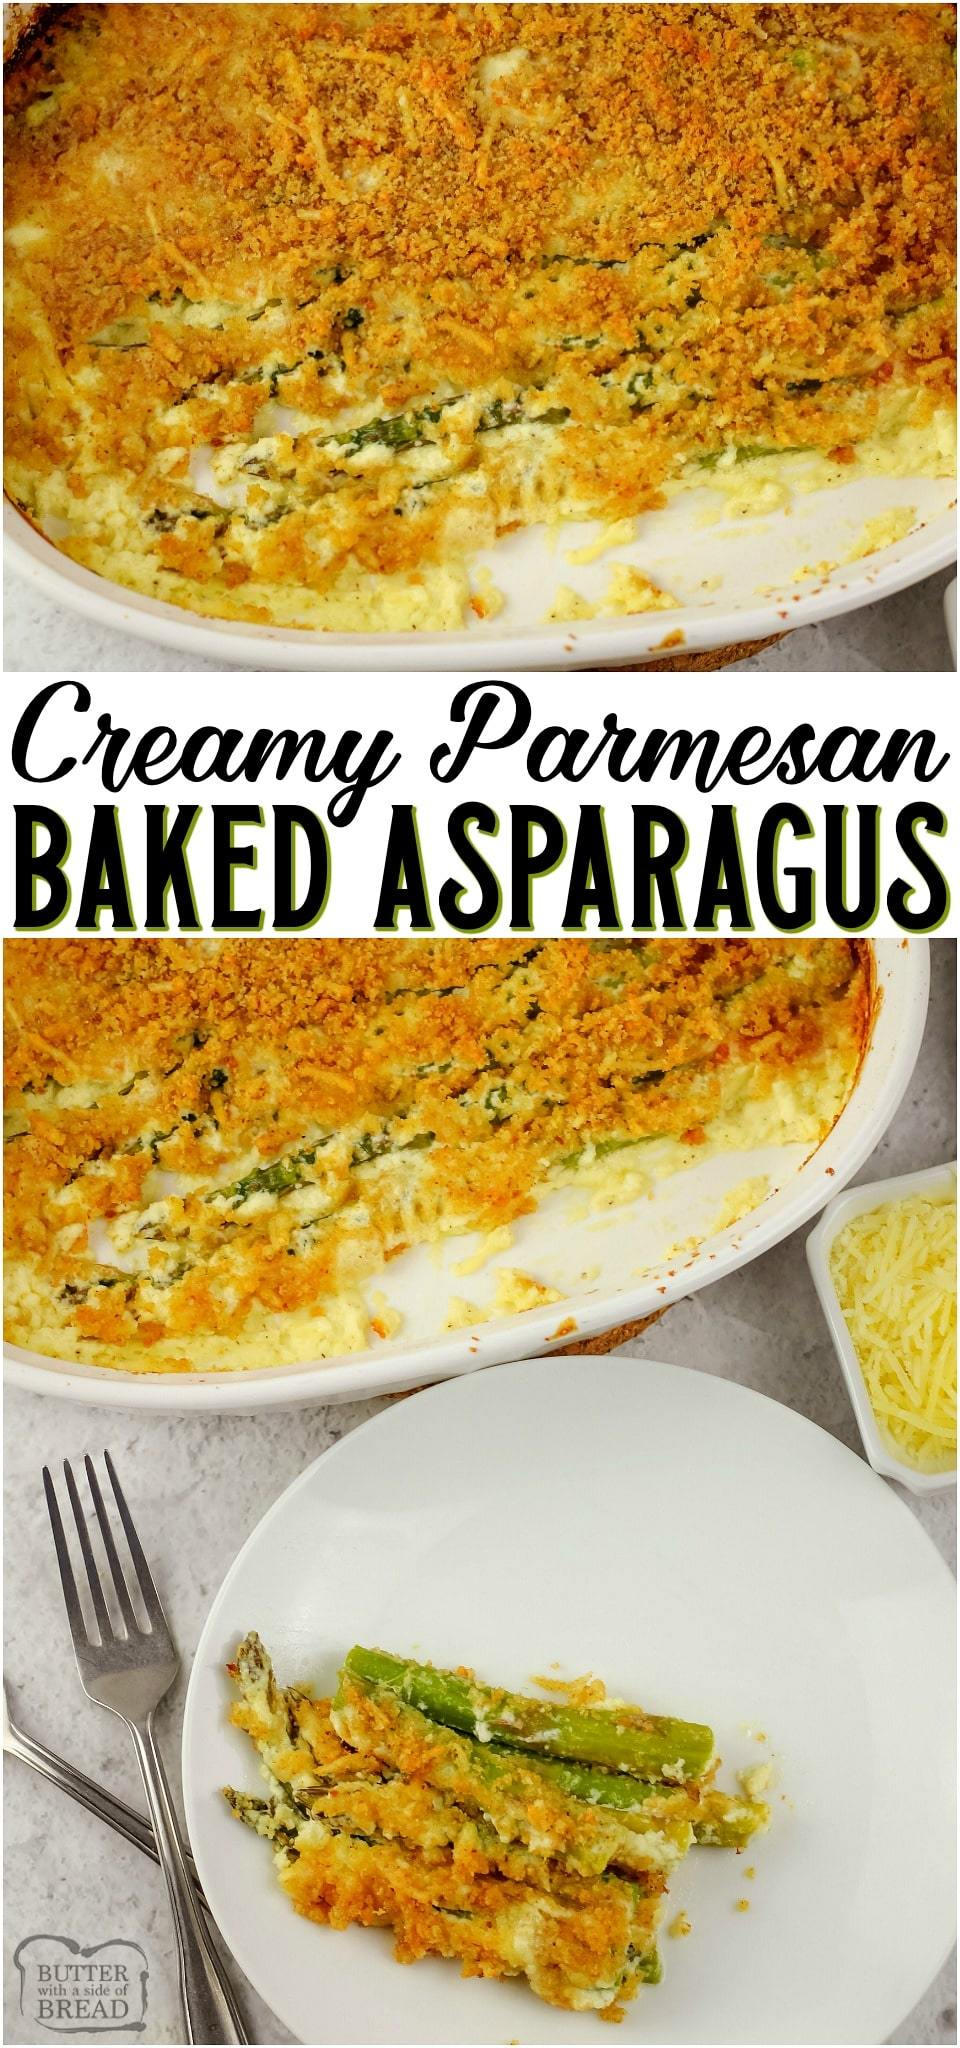 Creamy Baked Asparagus is a cheesy side dish made with fresh asparagus & parmesan cream sauce. Easy baked asparagus topped with bread crumbs and butter for a toasty crunch. #asparagus #bakedasparagus #oven #creamy #cheesy #Parmesan #sidedish #recipe from BUTTER WITH A SIDE OF BREAD